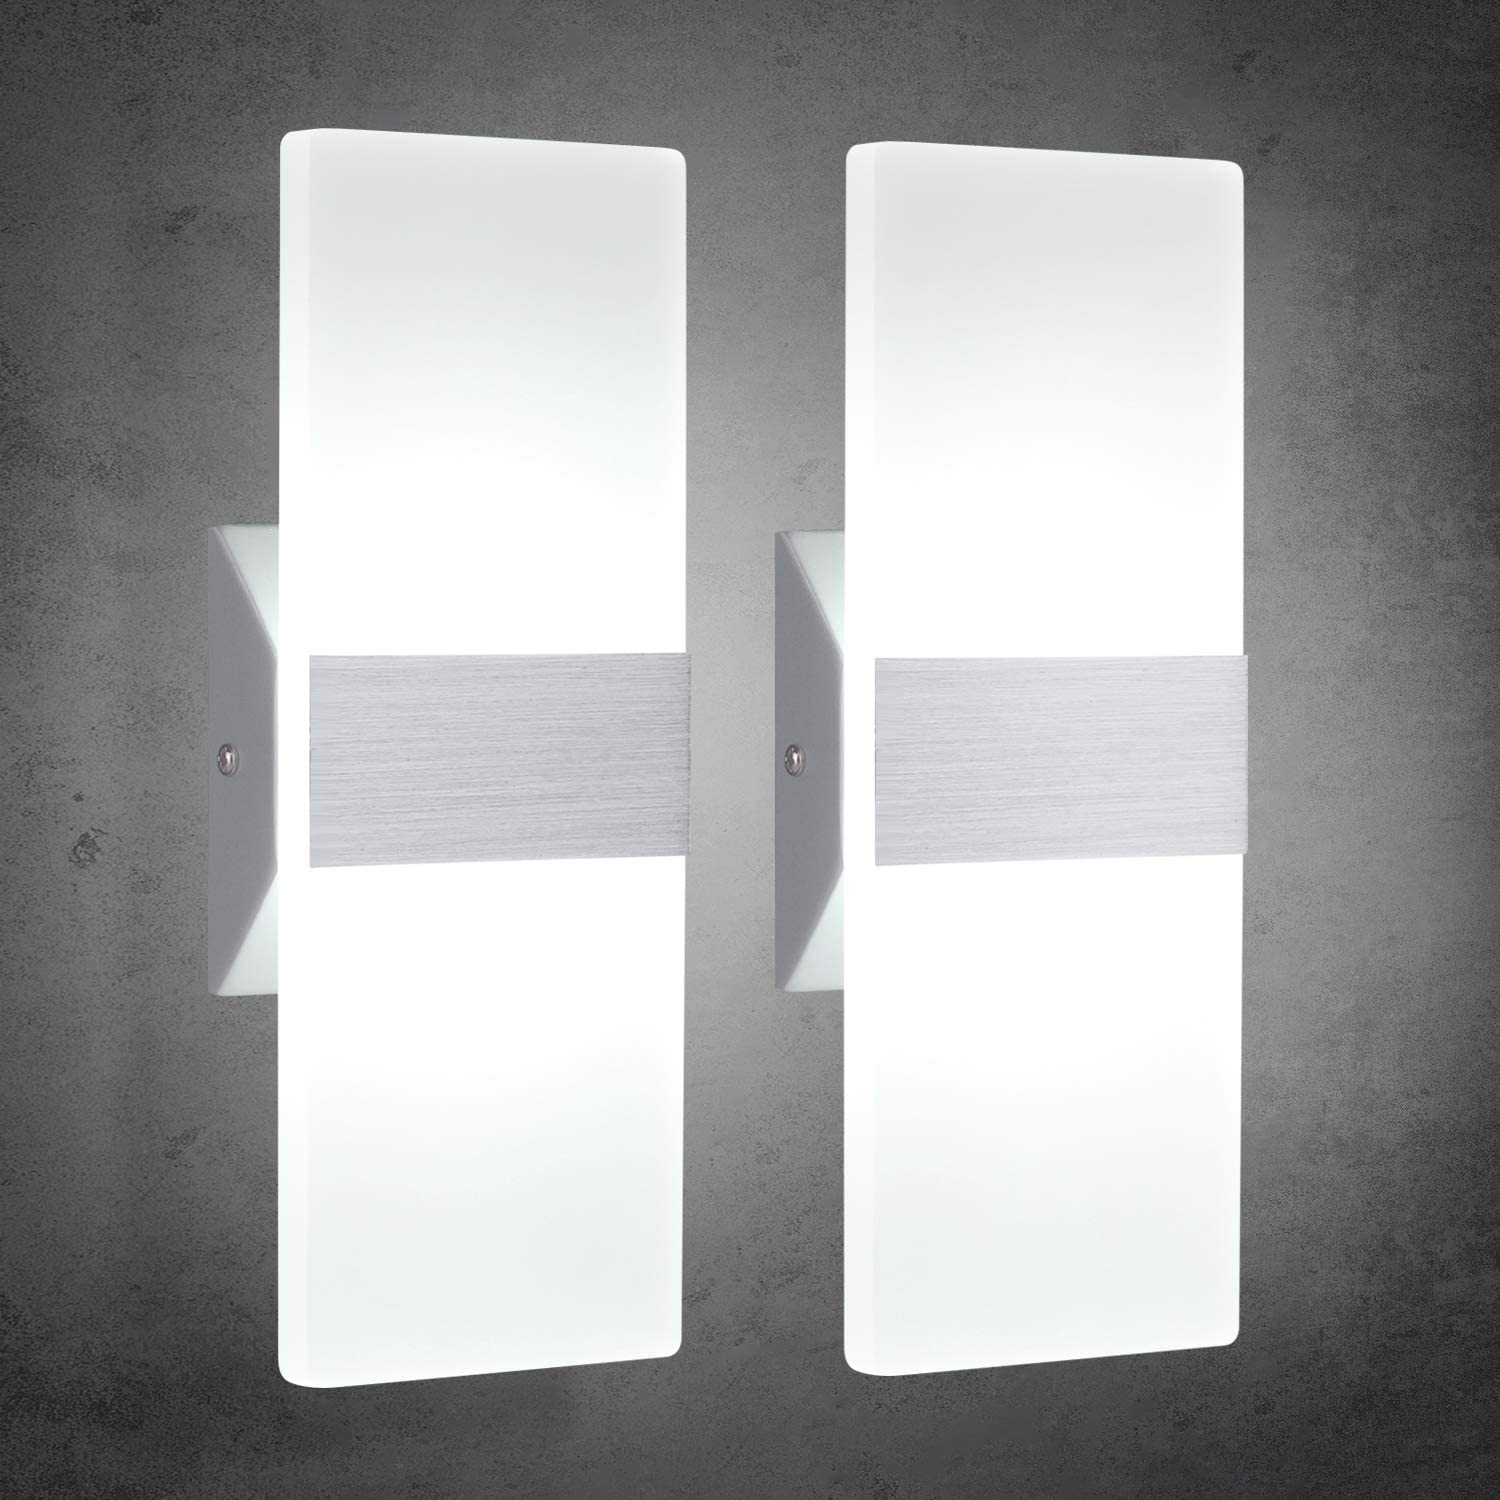 TRLIFE Modern Wall Sconces Set of Ranking TOP15 600 Mounted 2 12W Oakland Mall Lights